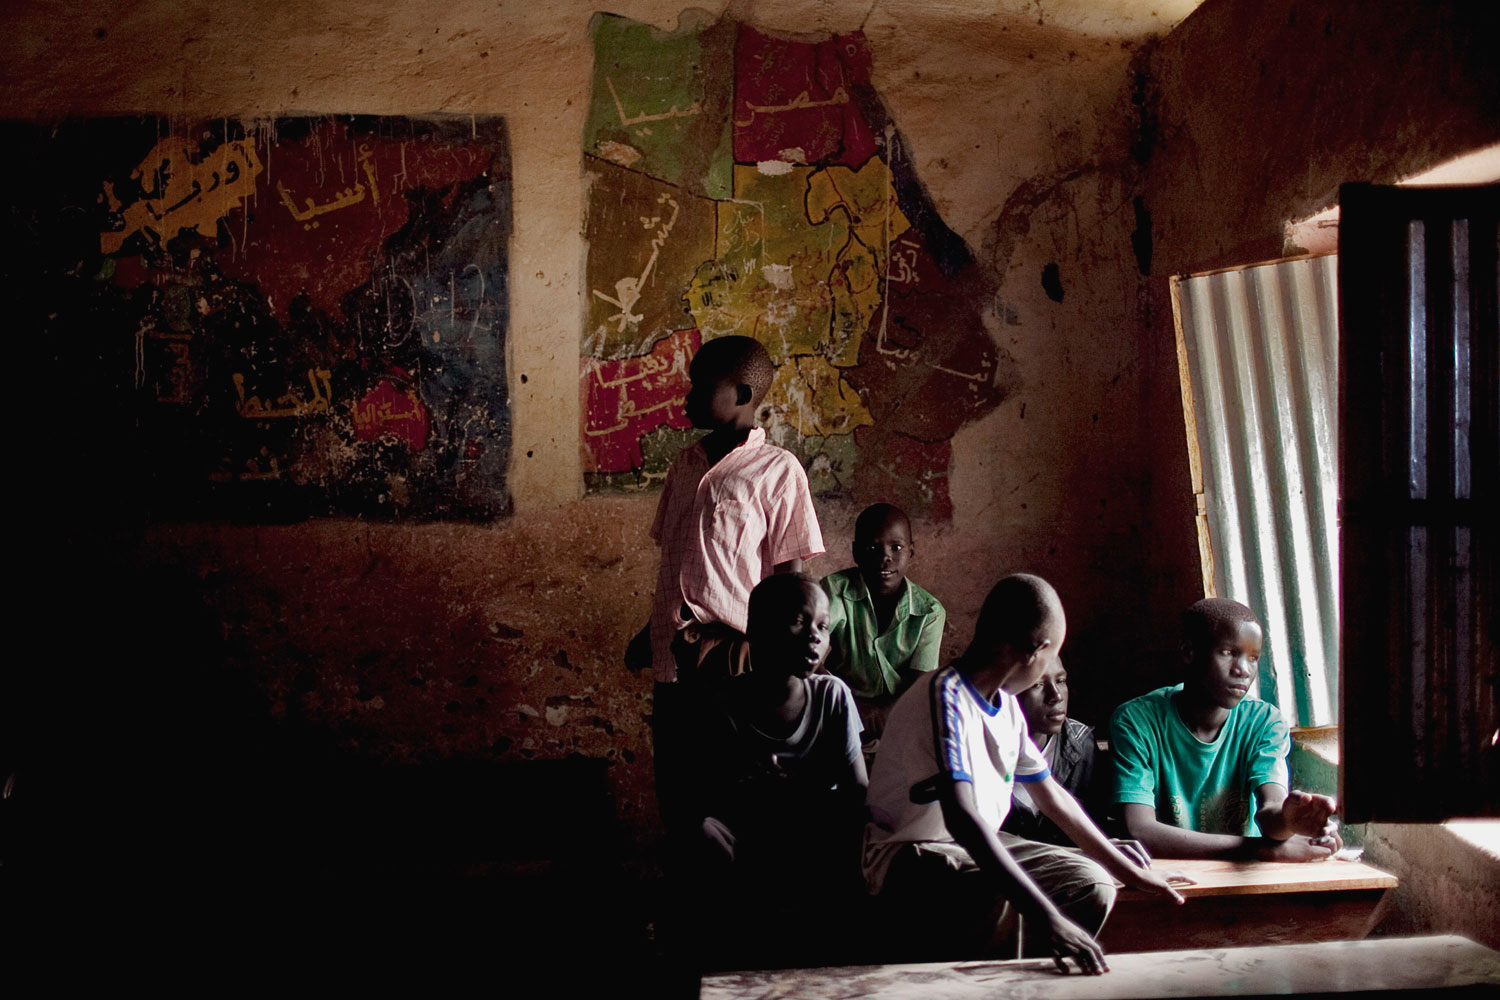 July 4, 2011. Southern Sudanese boys take shelter from afternoon rains that disrupted rehearsal for independence day celebrations in the capital city of Juba. The mural behind the boys depicts a map of the united Sudan.